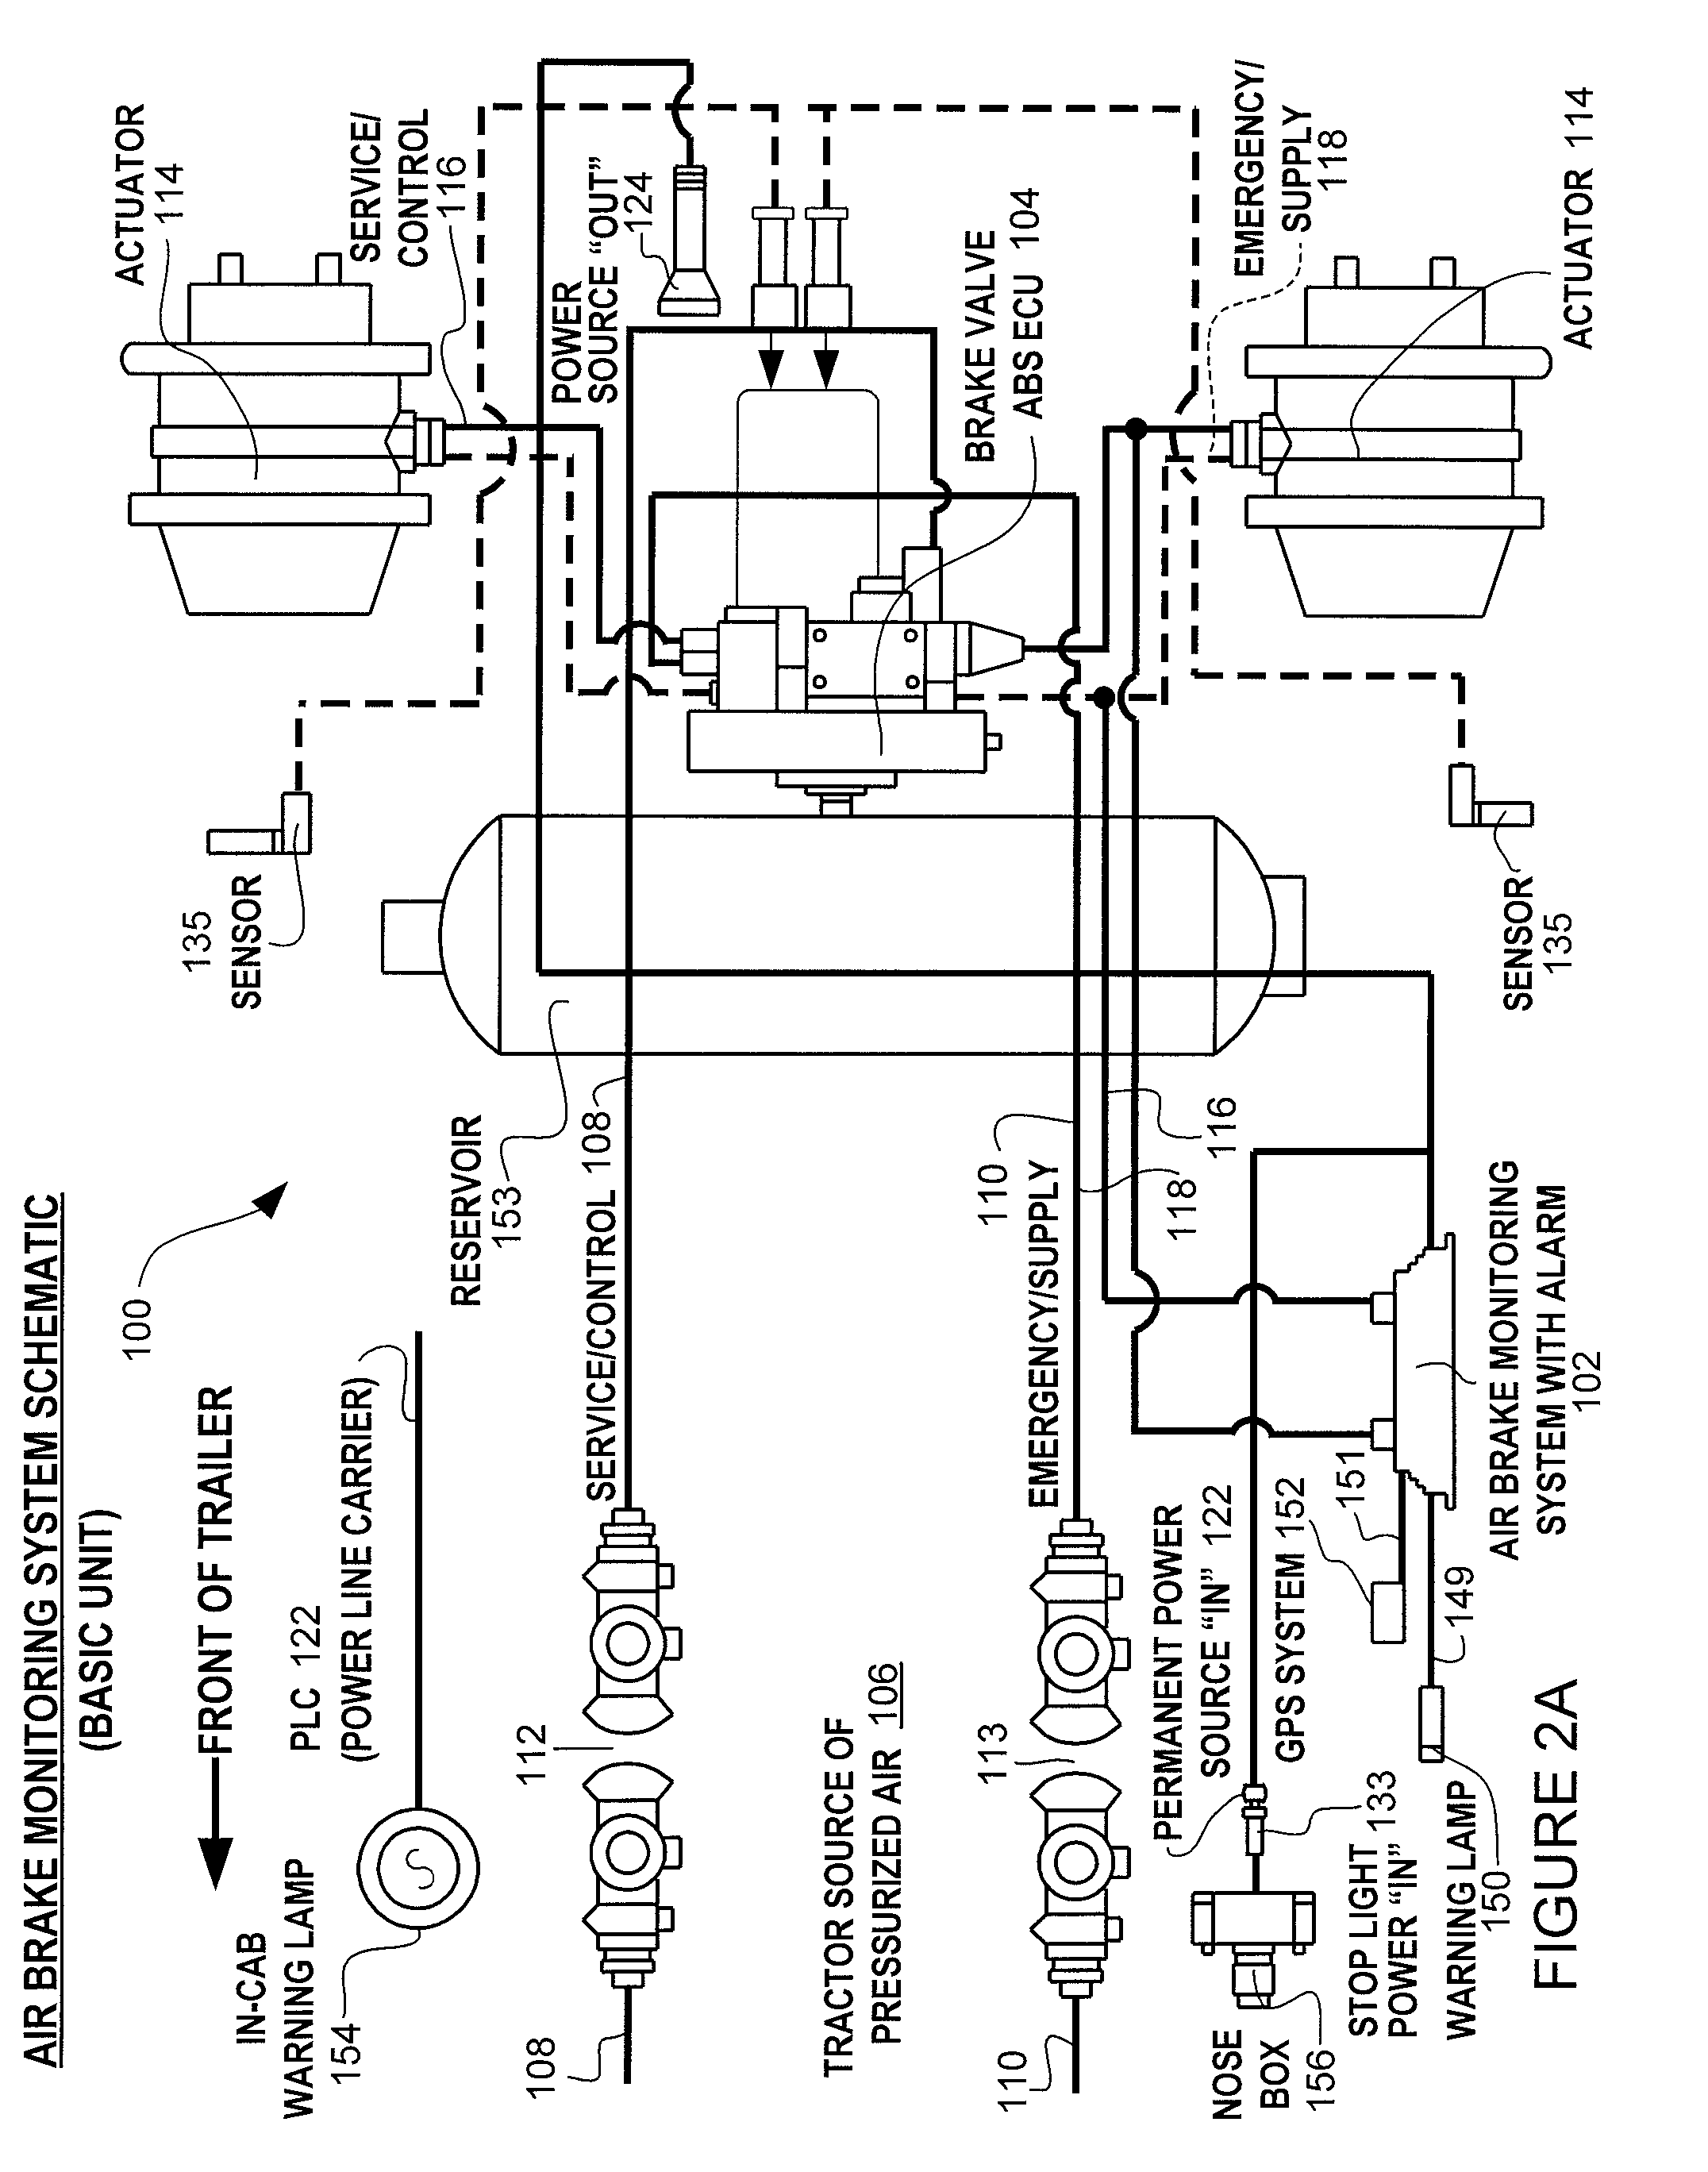 Wiring Diagram For A Hydro Air System 37 Images Hyster 50 Us08204668 20120619 D00003 Bendix Trailer Abs Flame